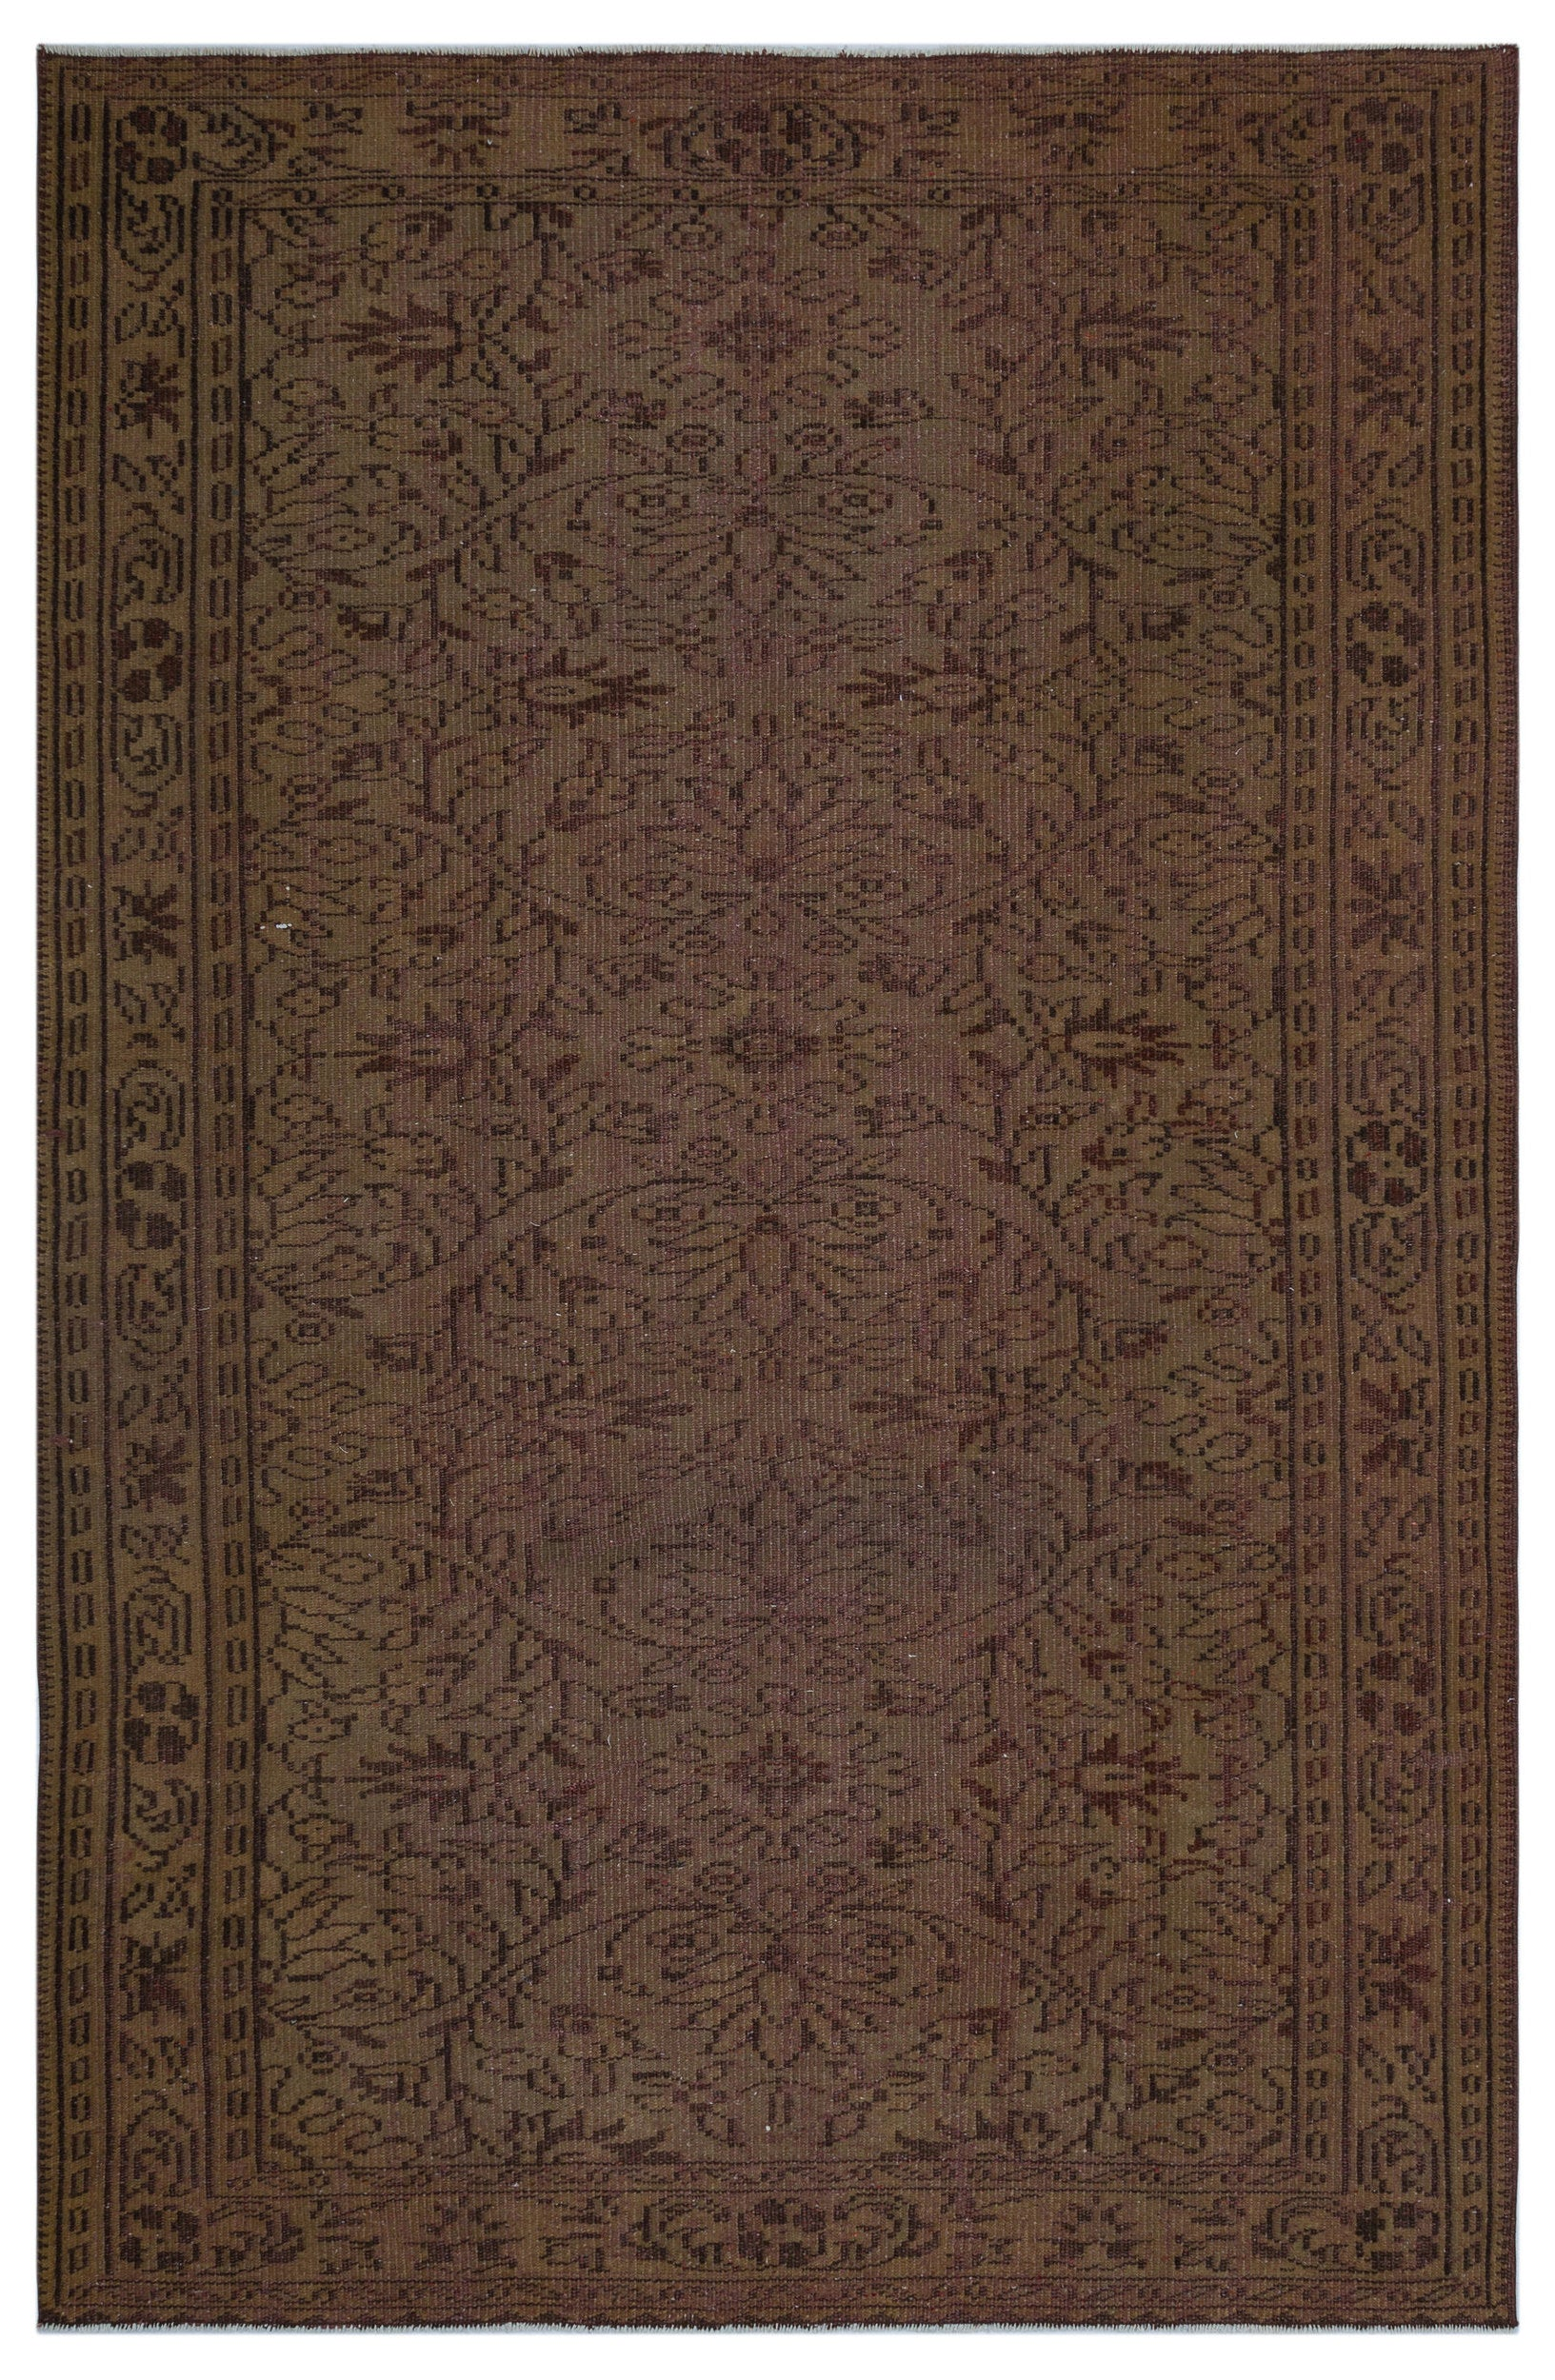 Brown Over Dyed Vintage Rug 5'9'' x 8'8'' ft 174 x 264 cm